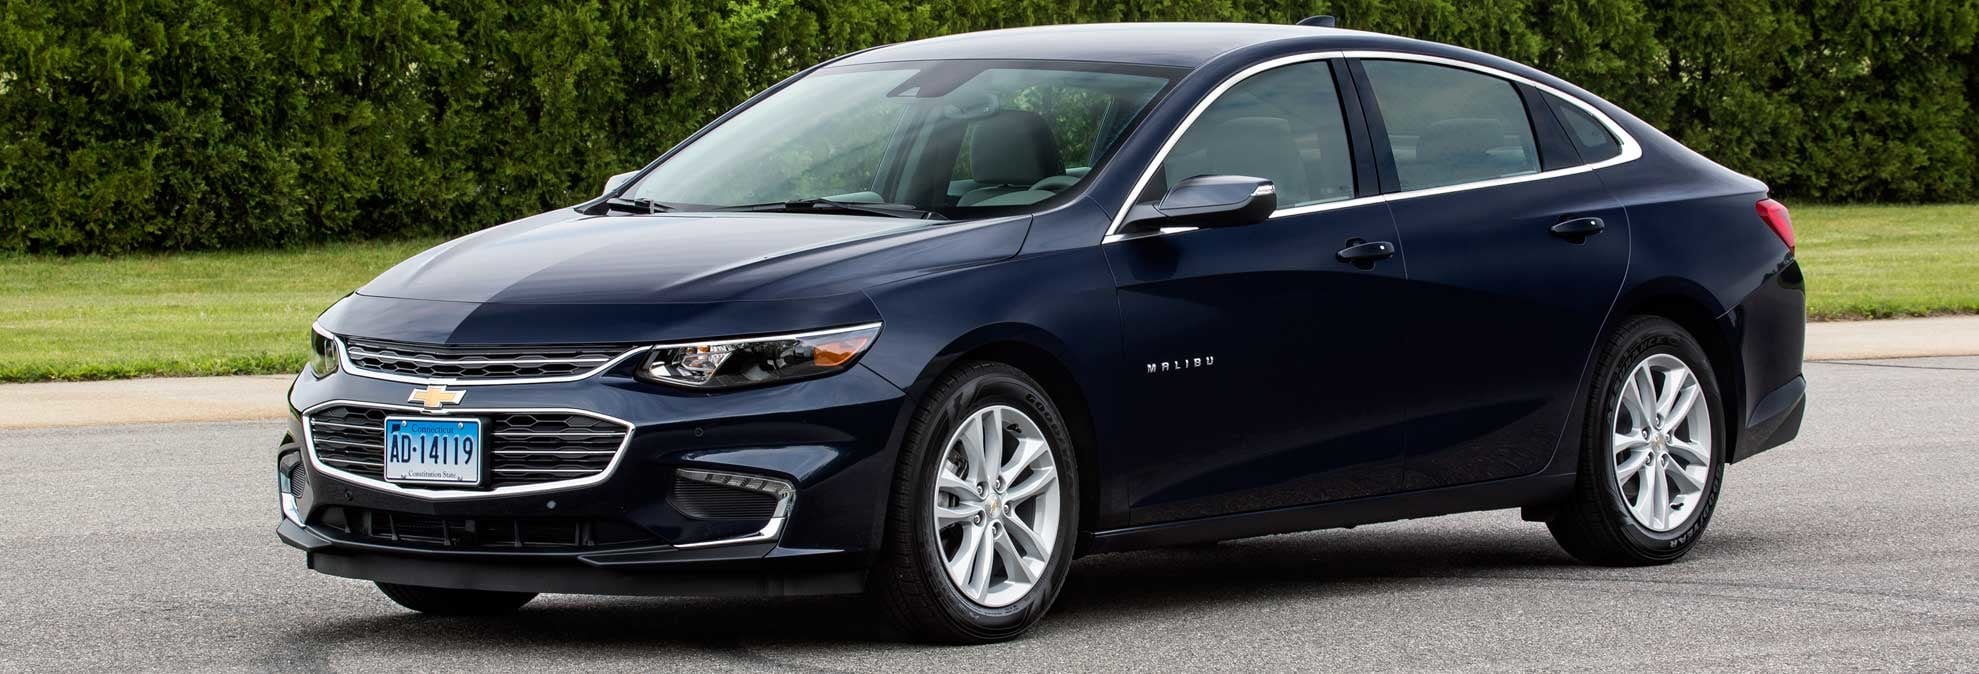 2017 Chevrolet Malibu Hybrid Achieves Best In Cl Fuel Economy